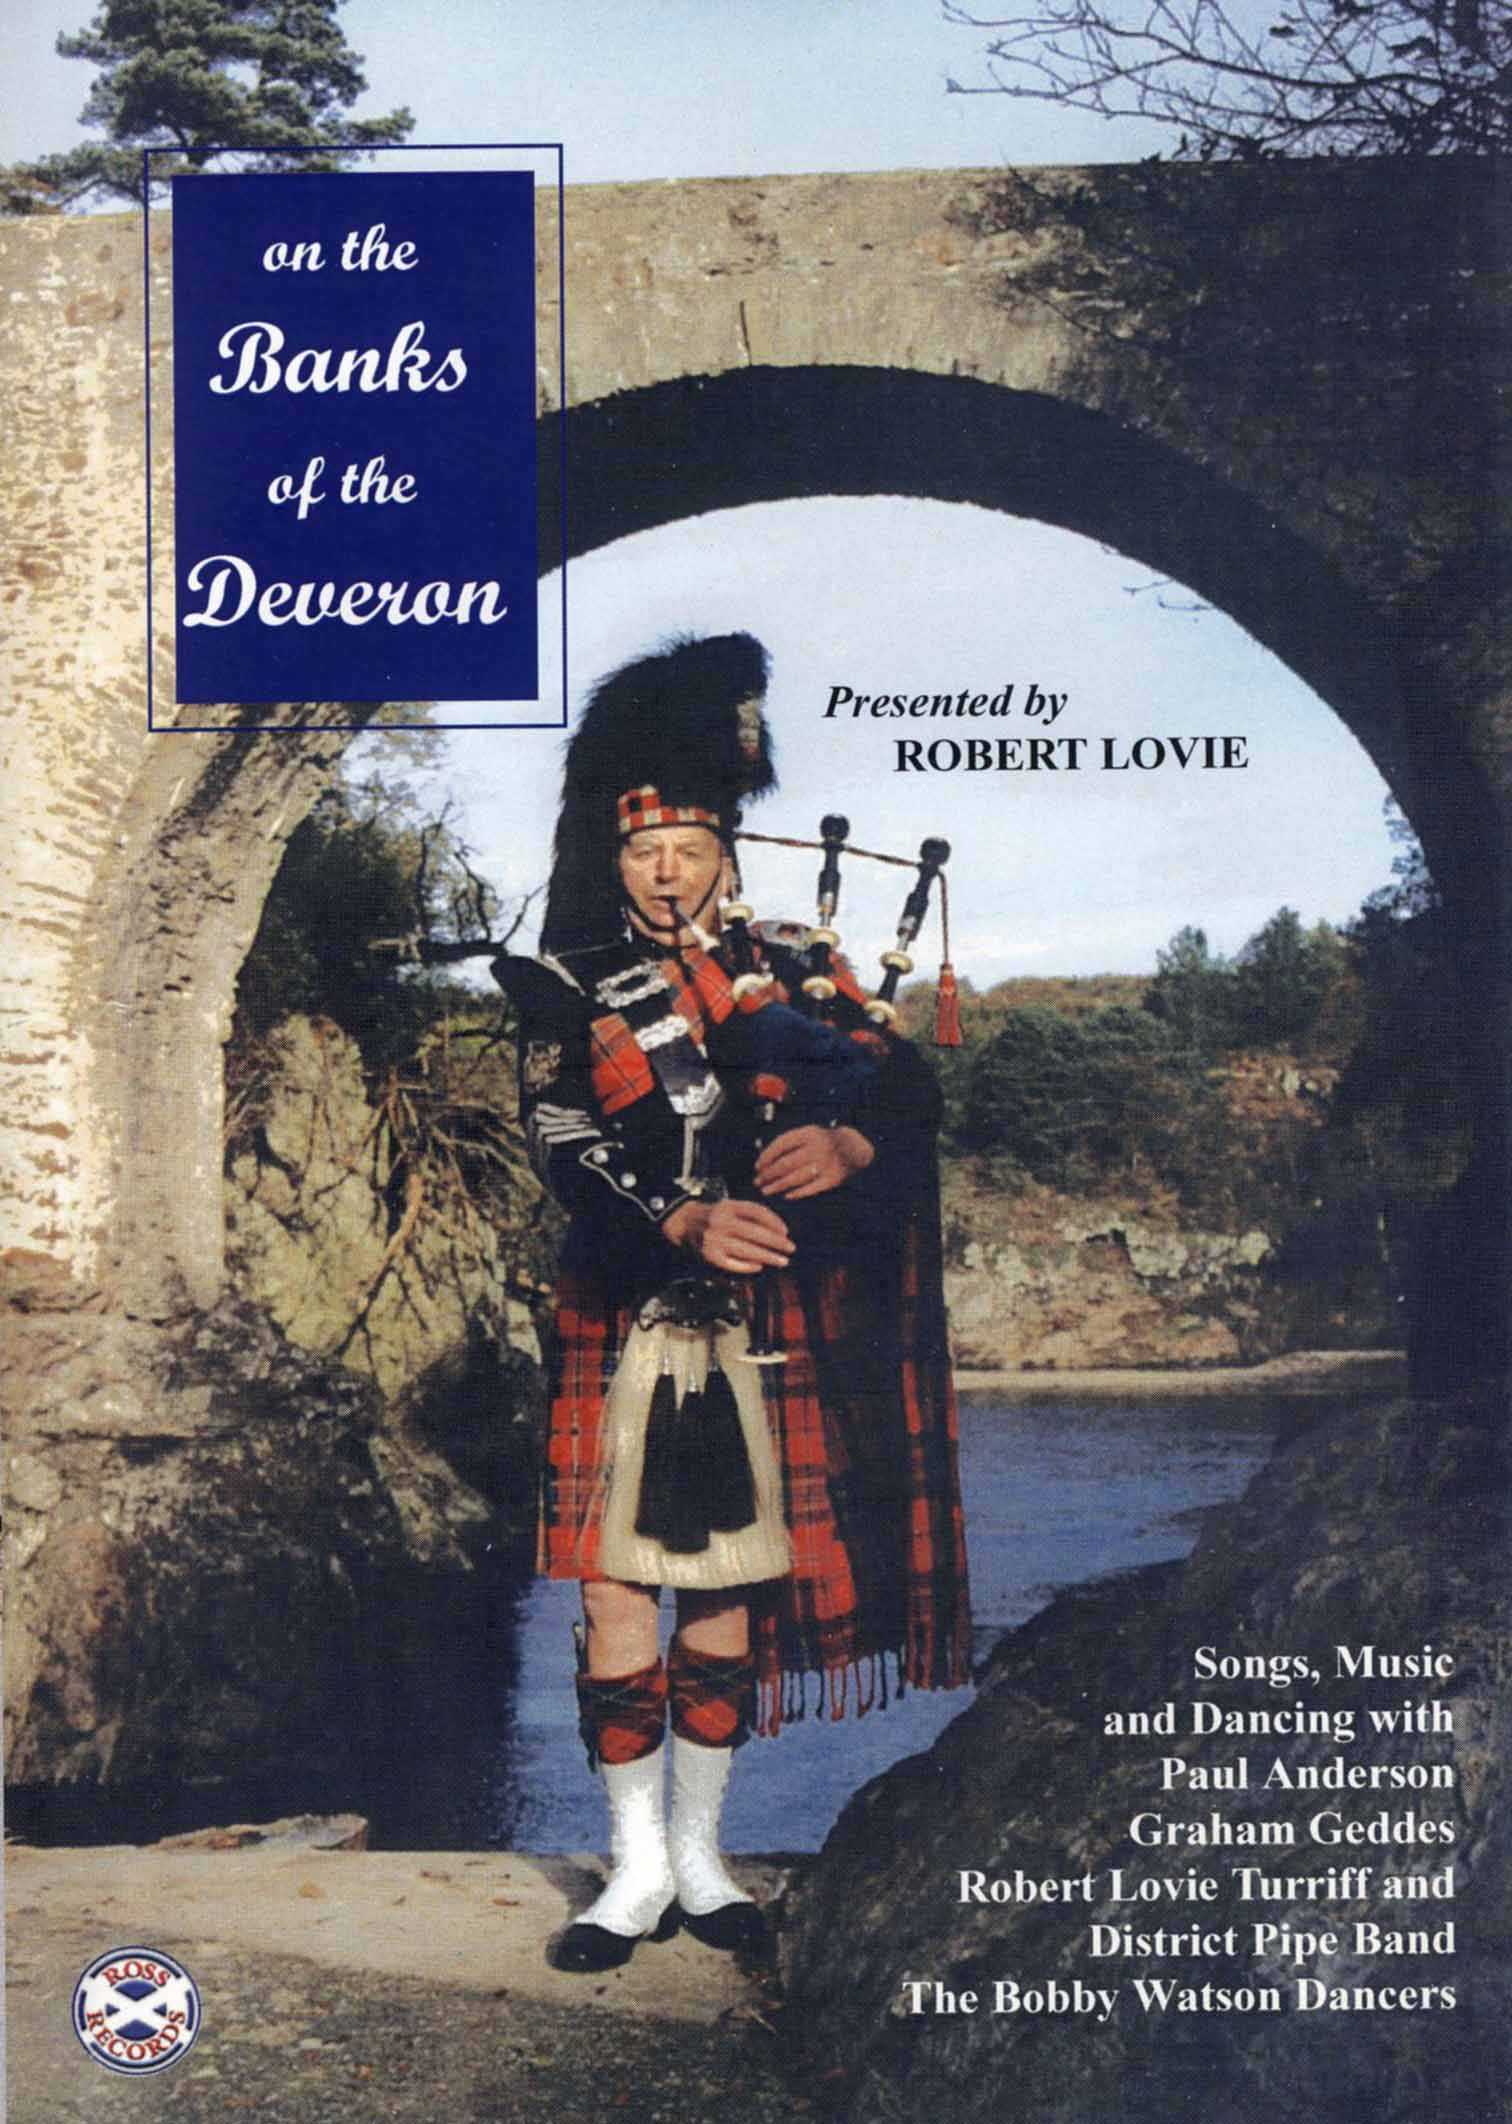 On the Banks of the Deveron